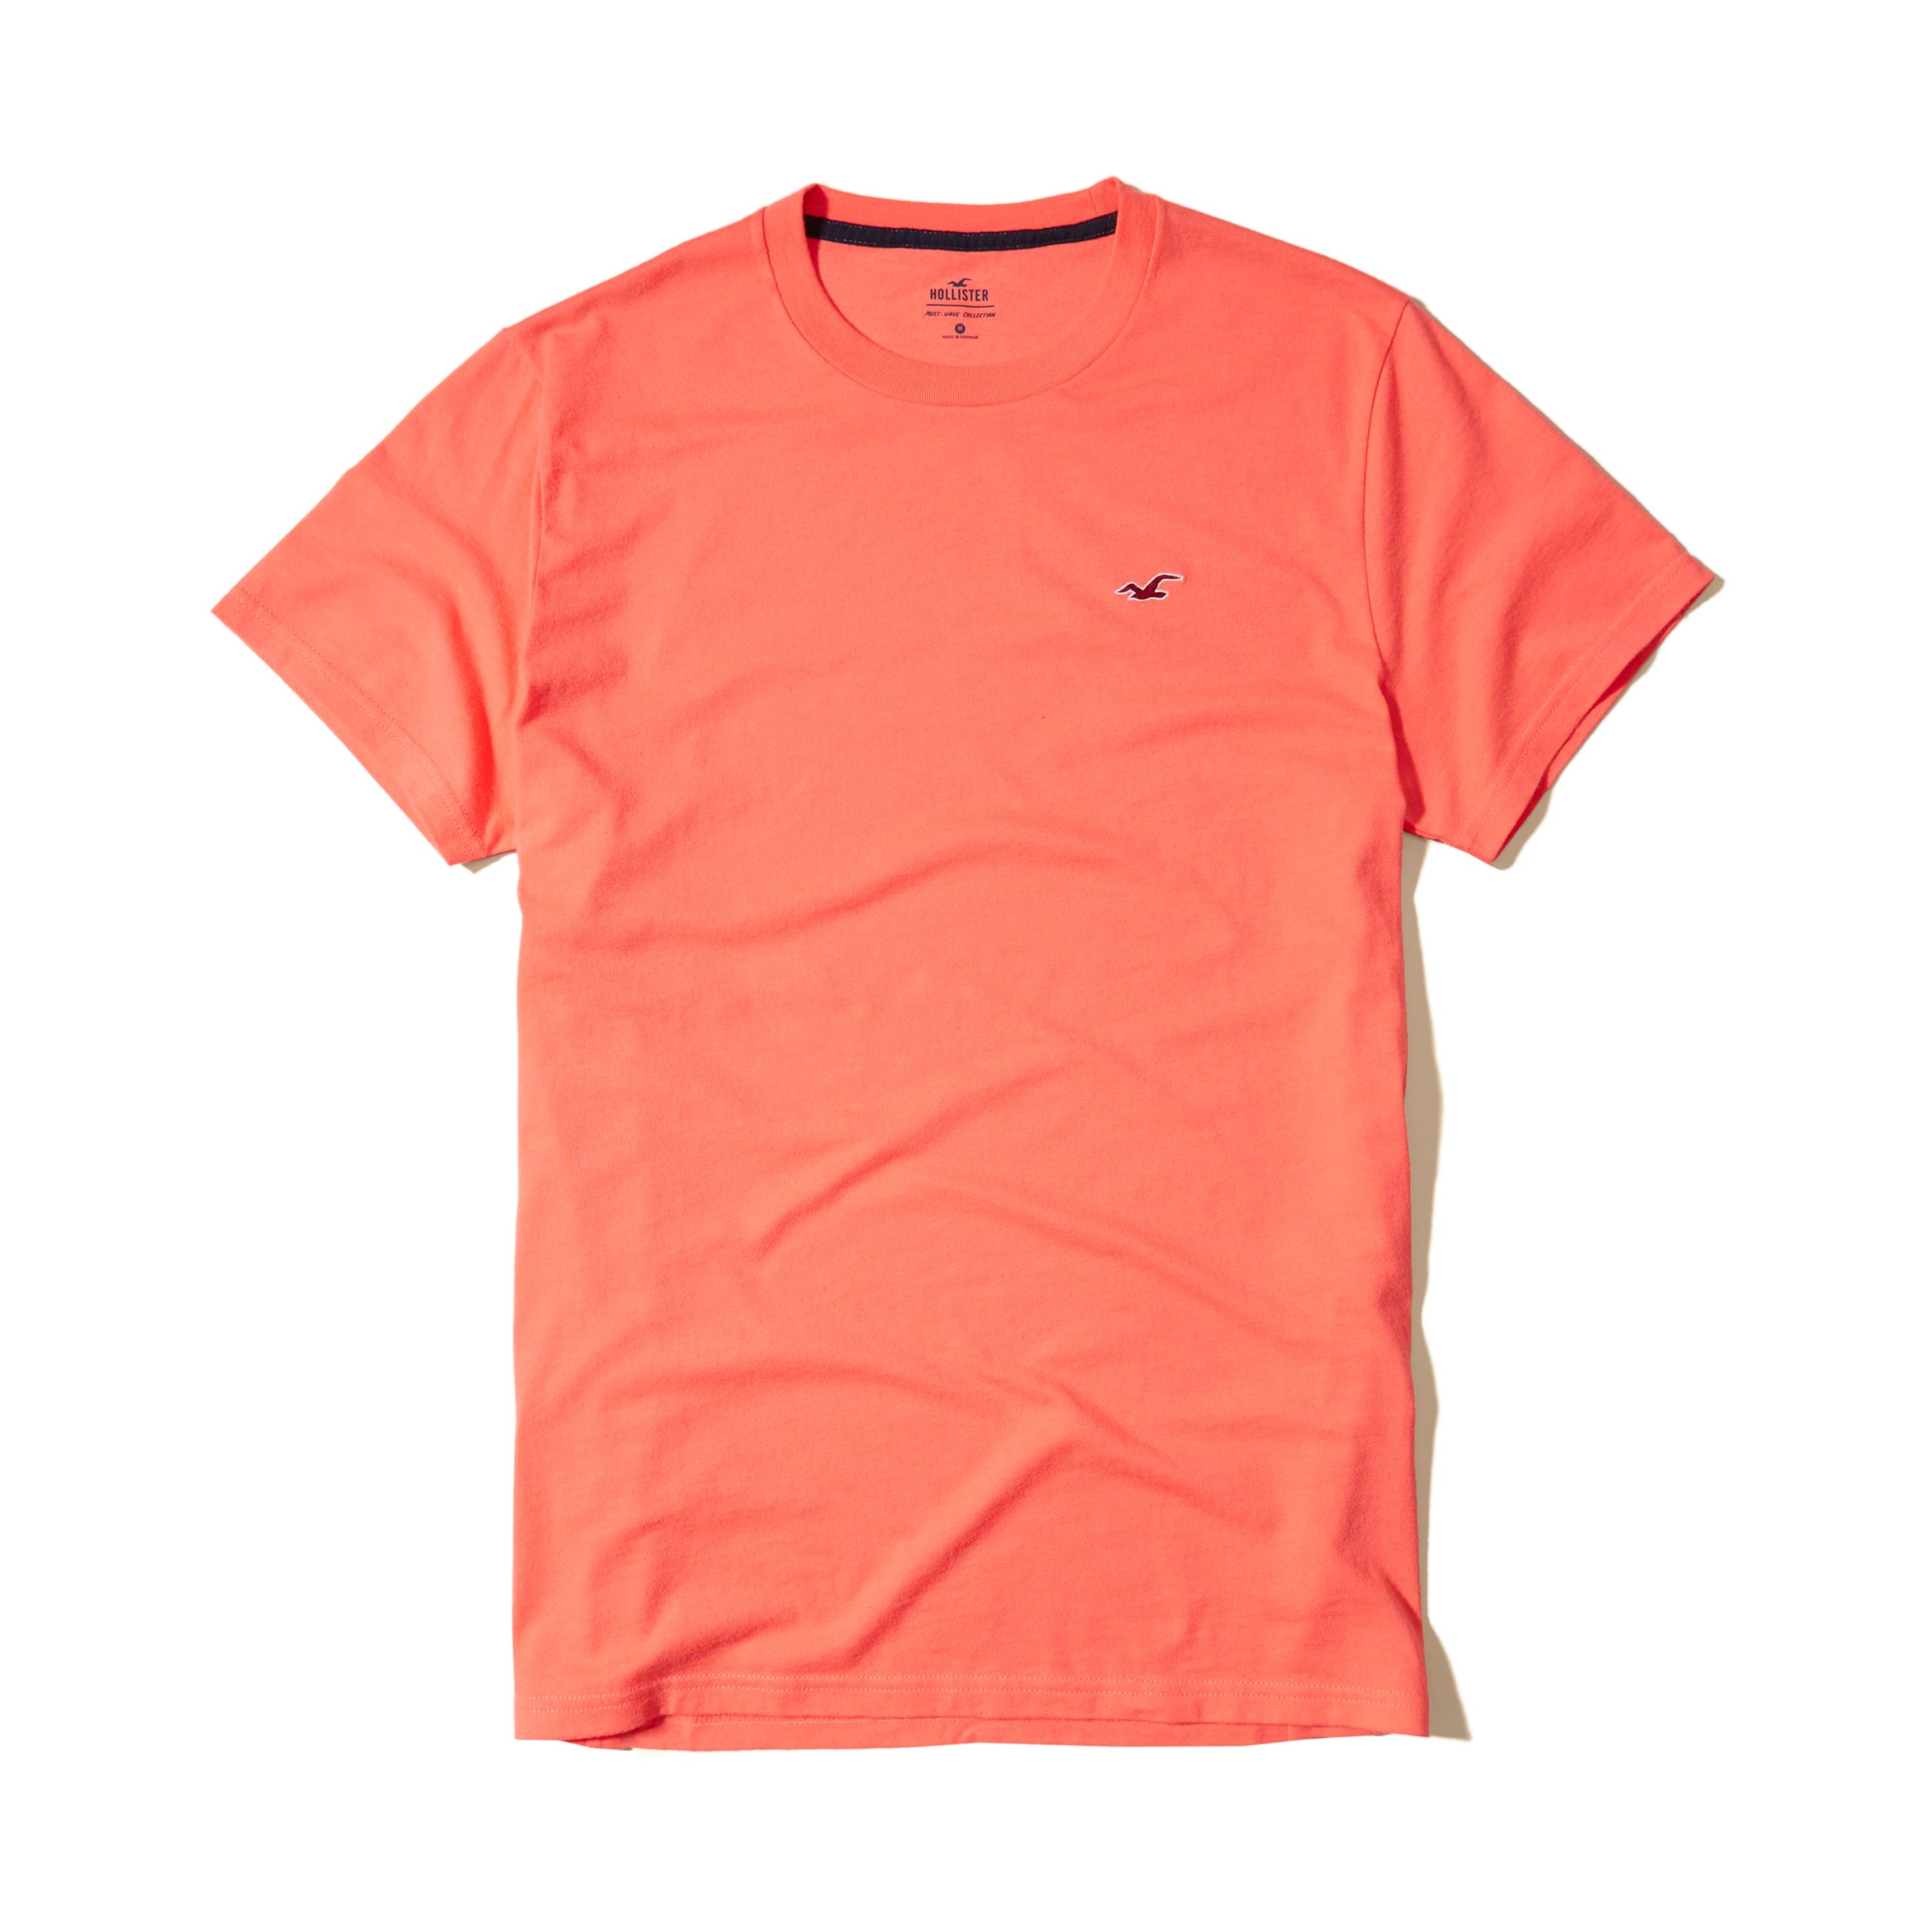 Lyst hollister must have crew t shirt in orange for men for Must have dress shirts